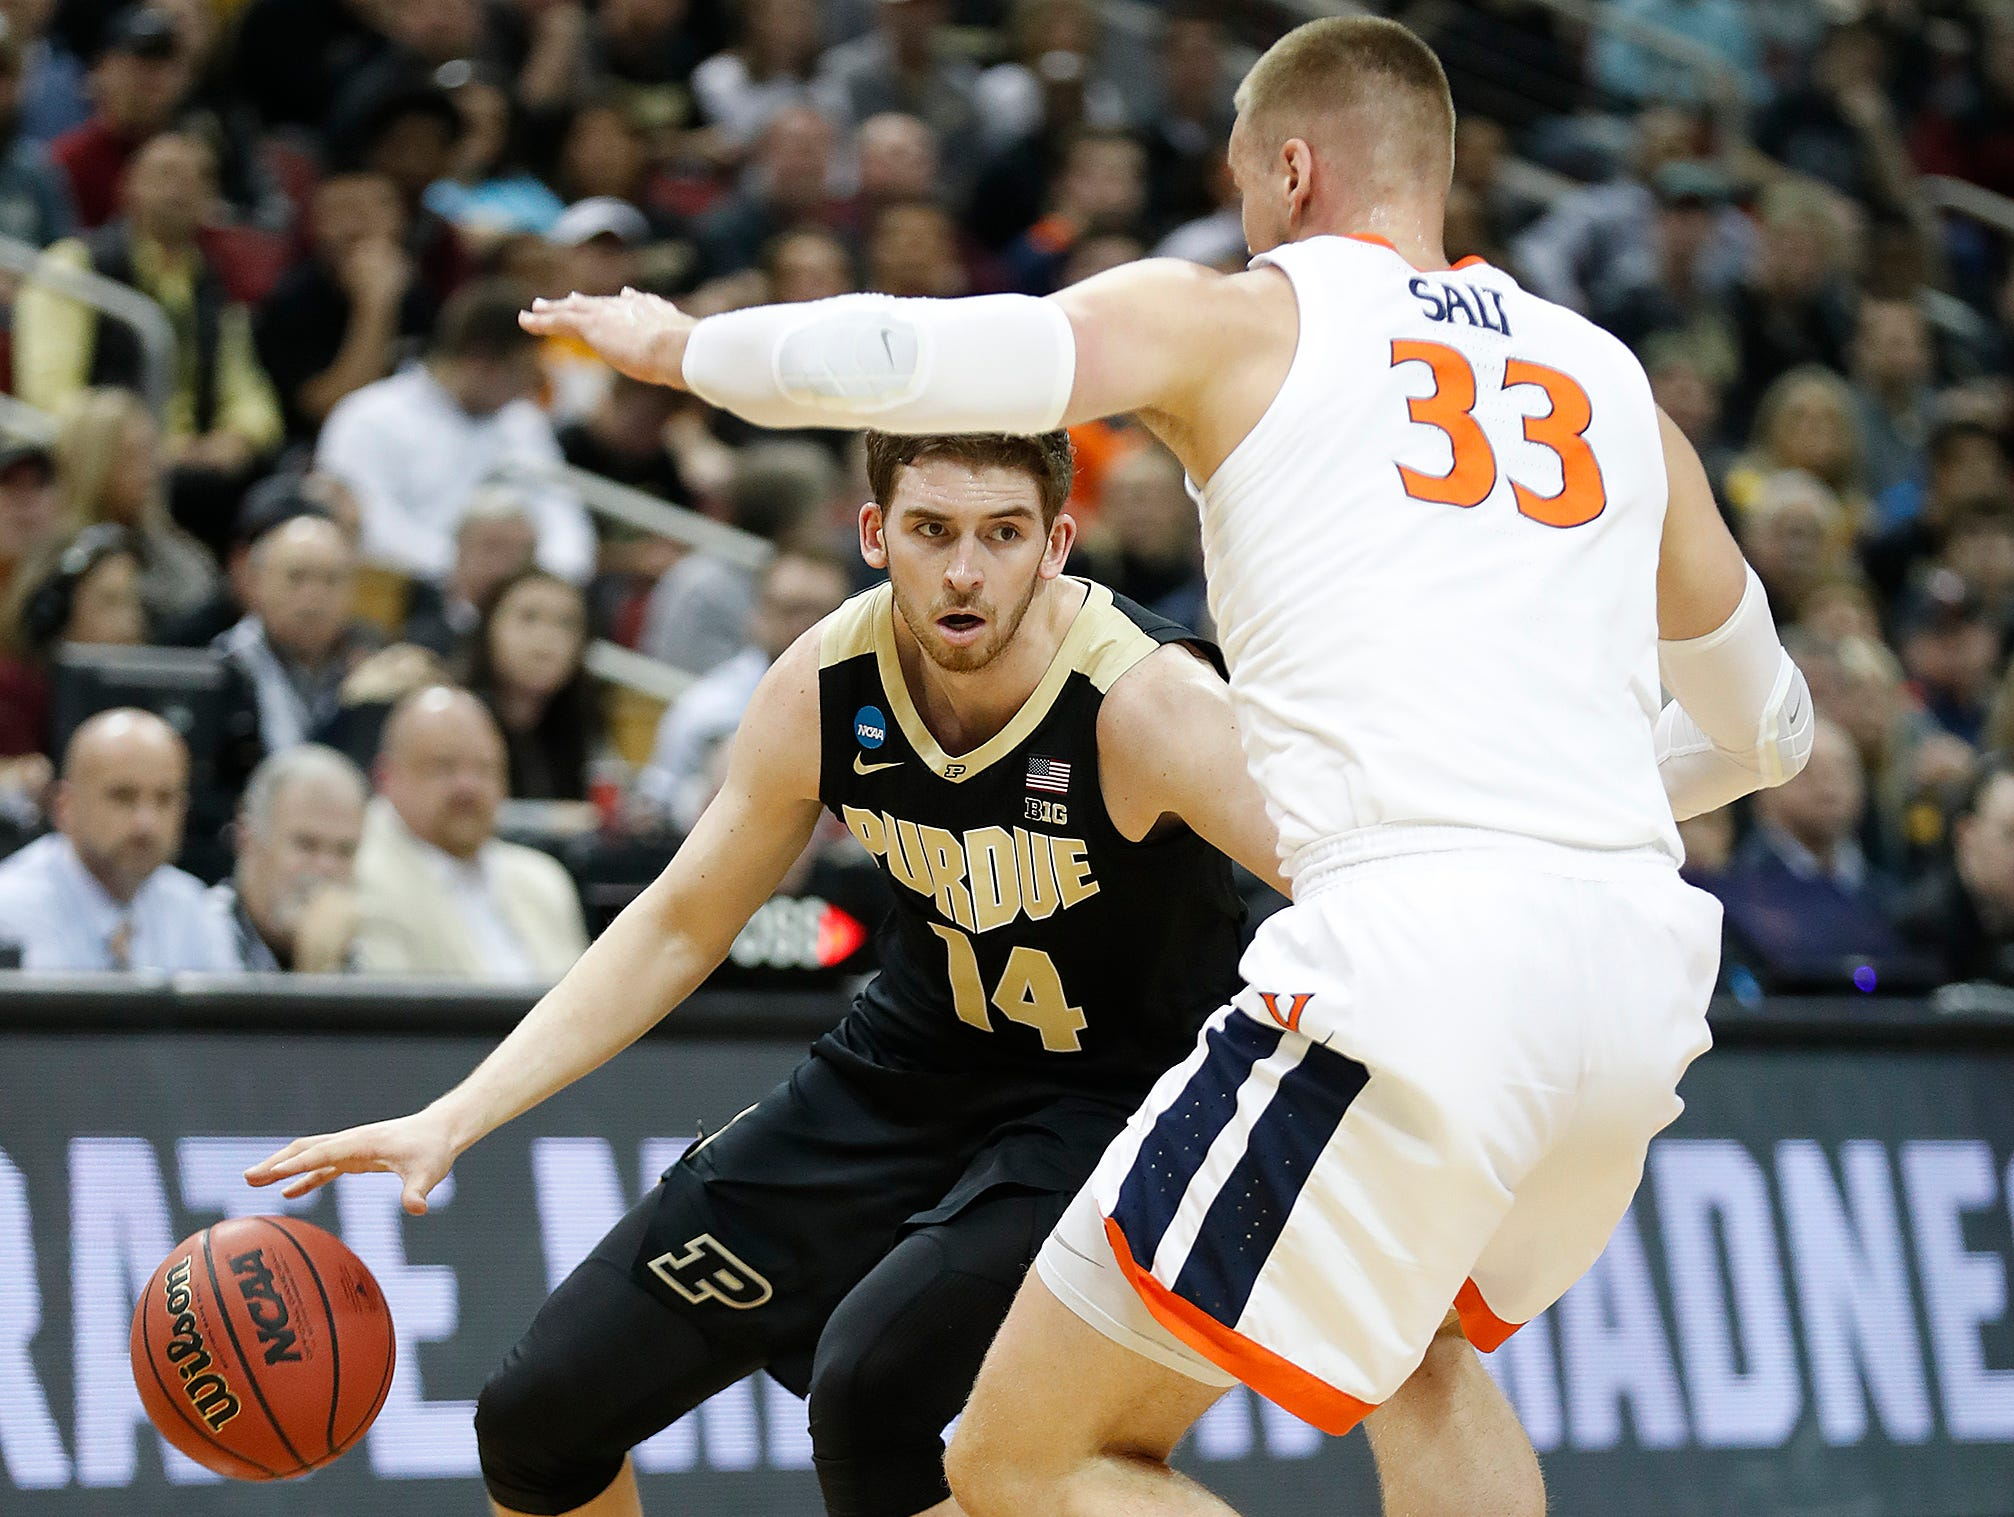 "Purdue Boilermakers guard Ryan Cline (14) looks to pass around Virginia Cavaliers center Jack Salt (33) in the first half of their NCAA Division I Basketball Championship ""Elite 8"" basketball game at the KFC Yum! Center in Louisville, KY., on Saturday, Mar 30, 2019."